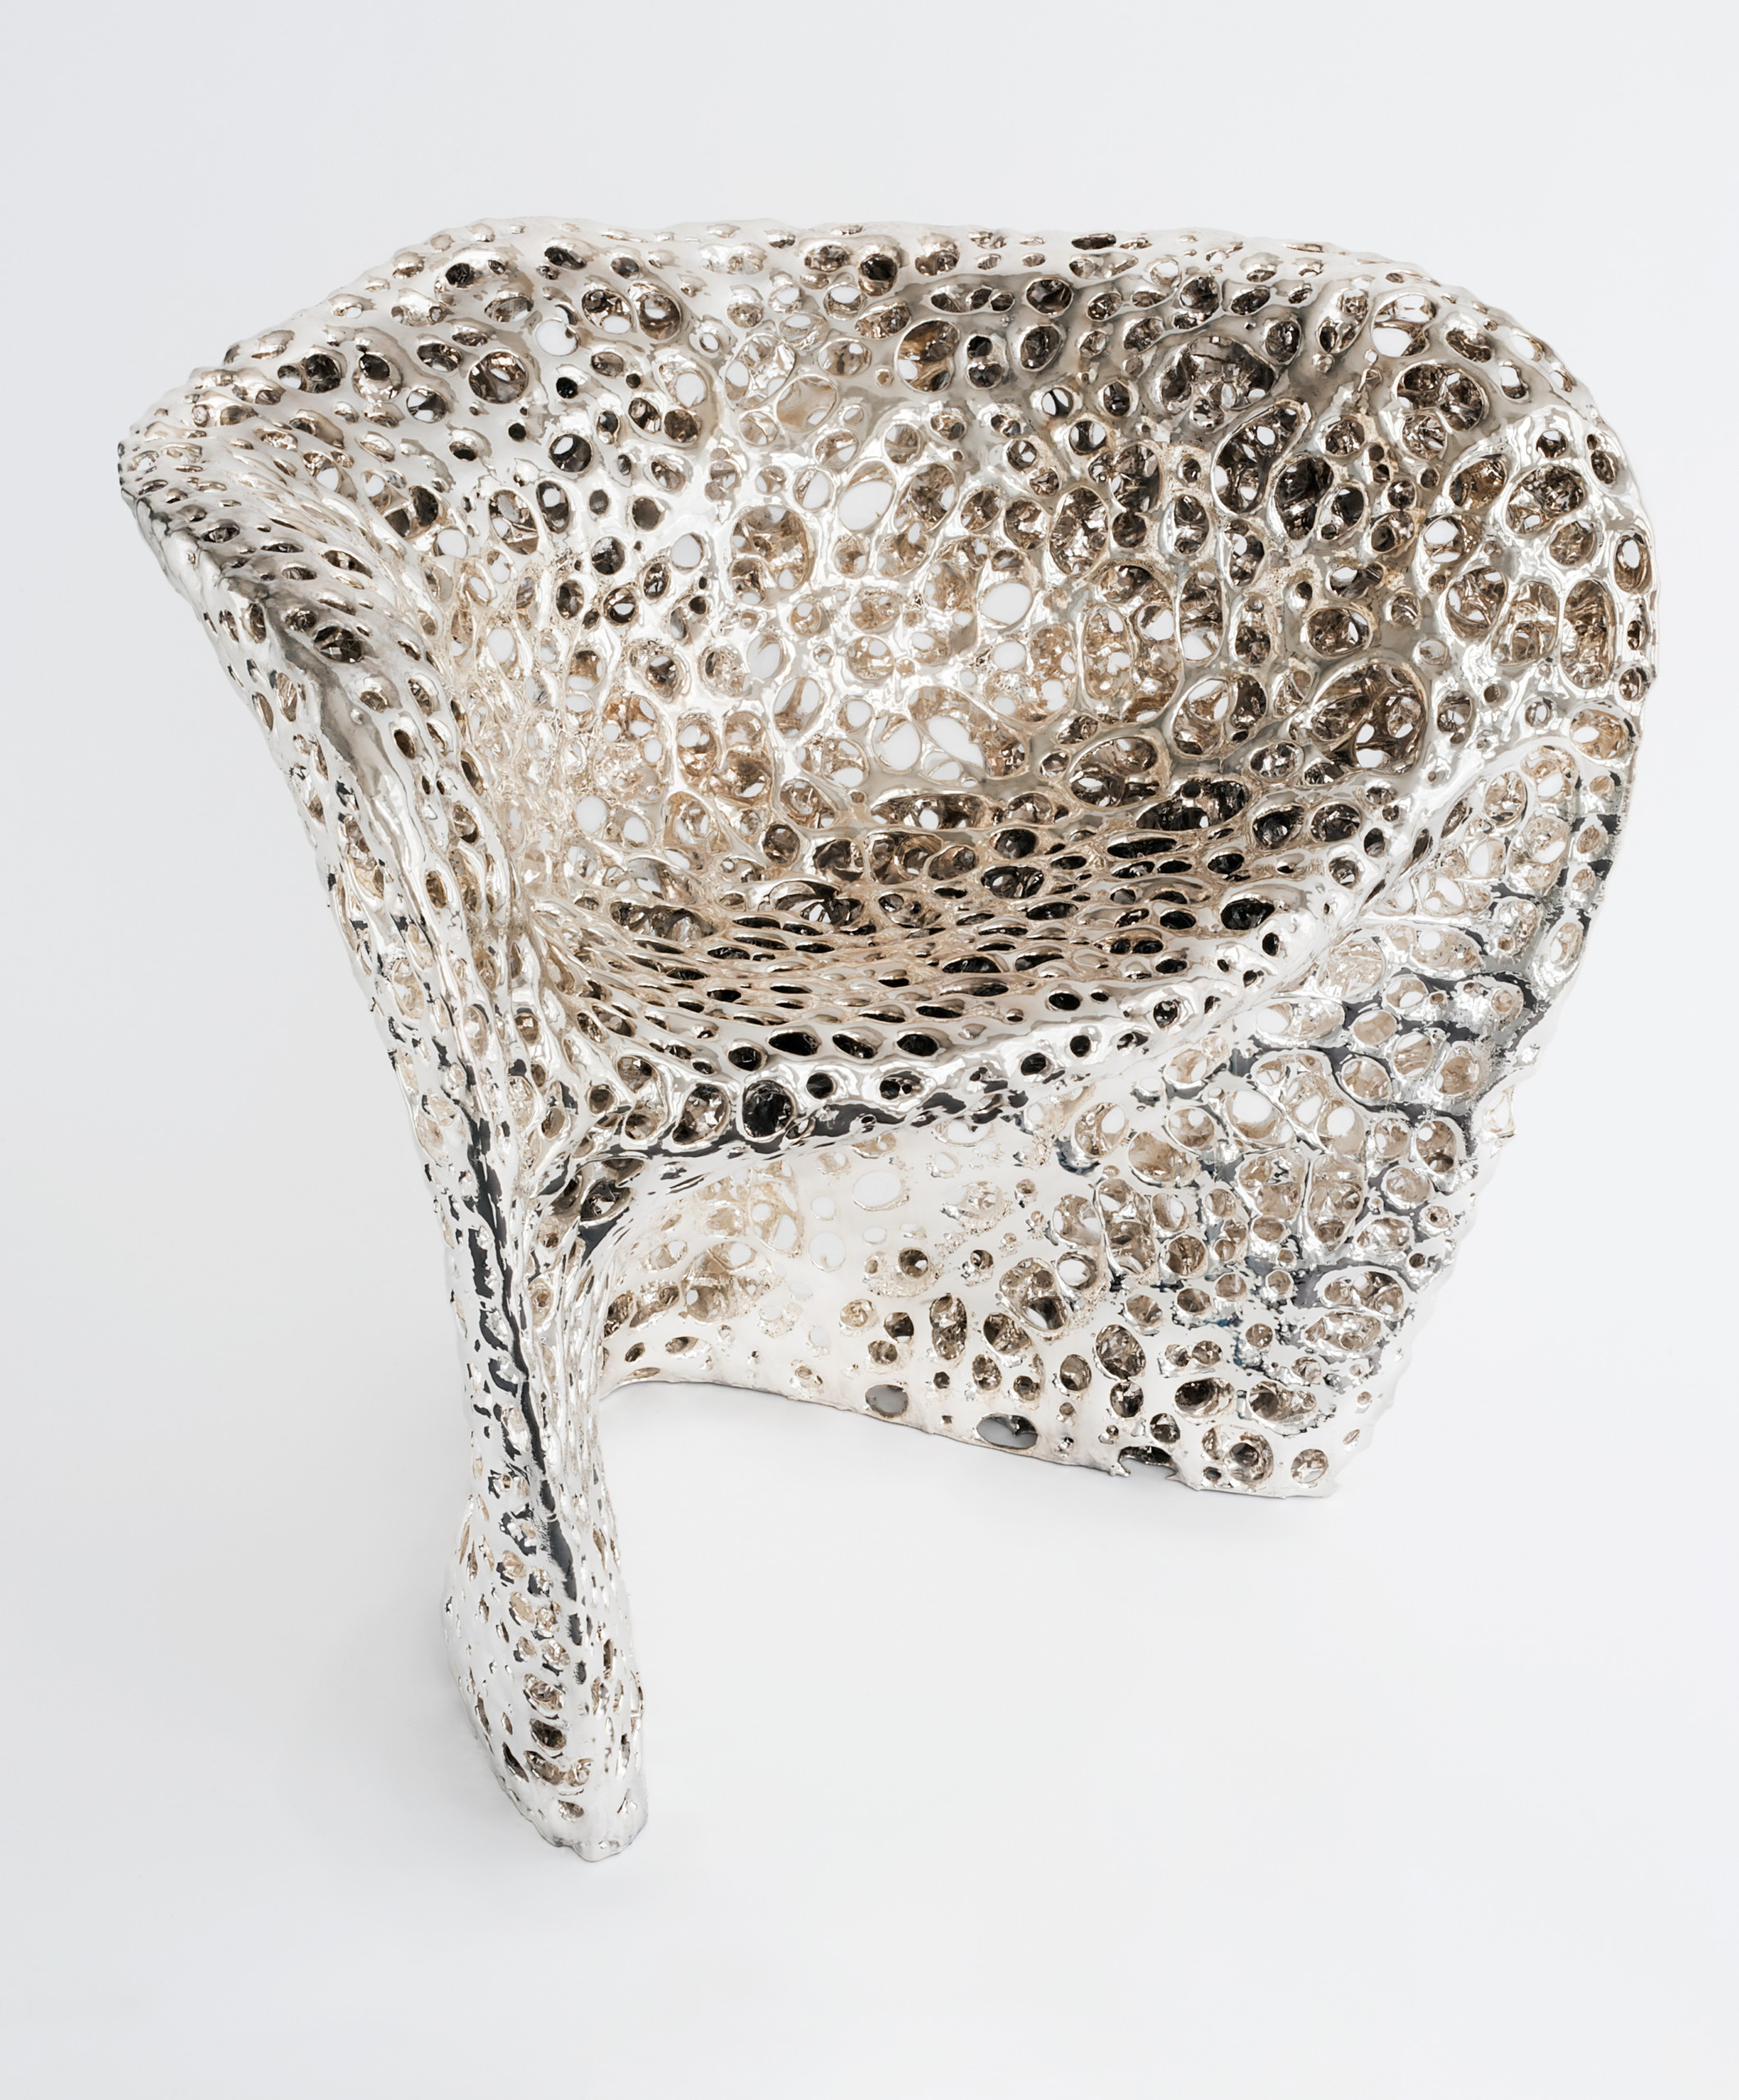 Mathias Bengtsson, Cellular Chair, 2011